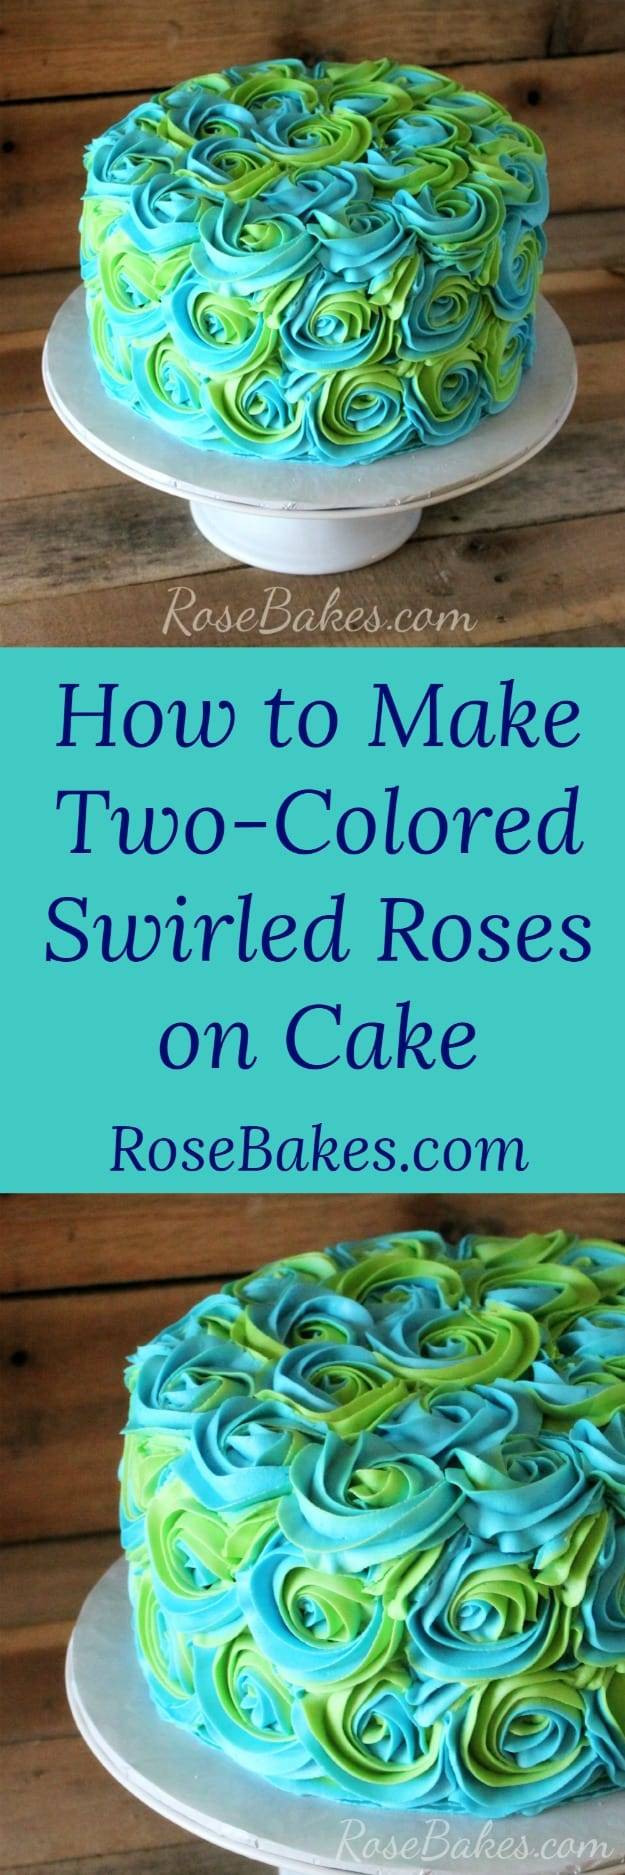 HOW TO MAKE TWO-COLORED SWIRLED ROSES ON CAKE Rose Bakes